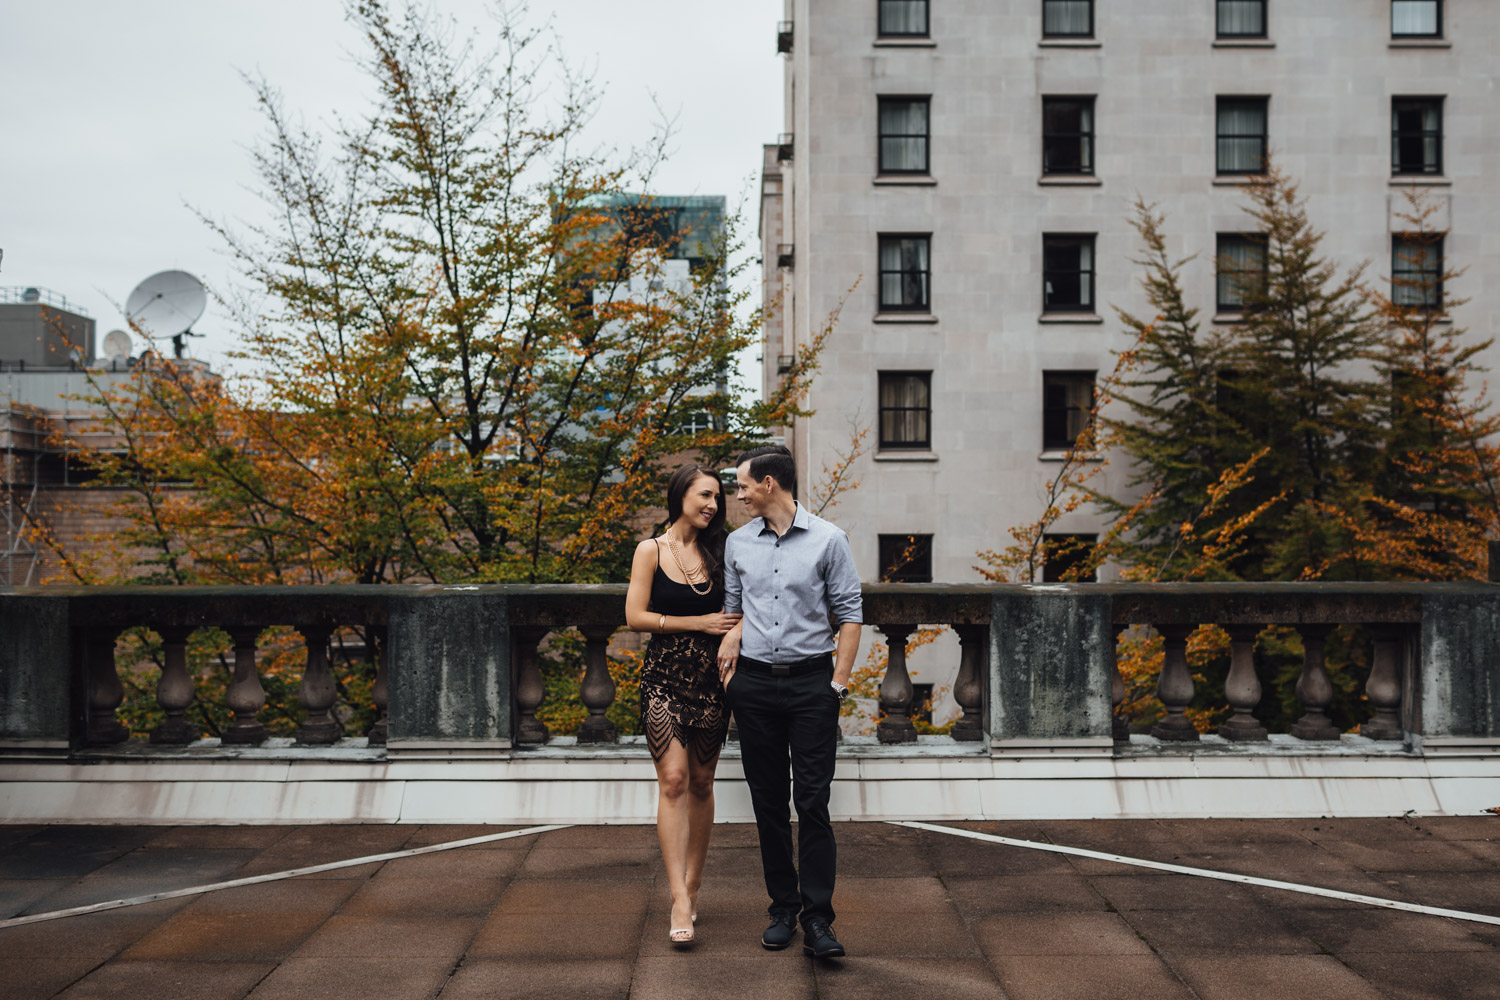 vancouver art gallery downtown engagement photography bc